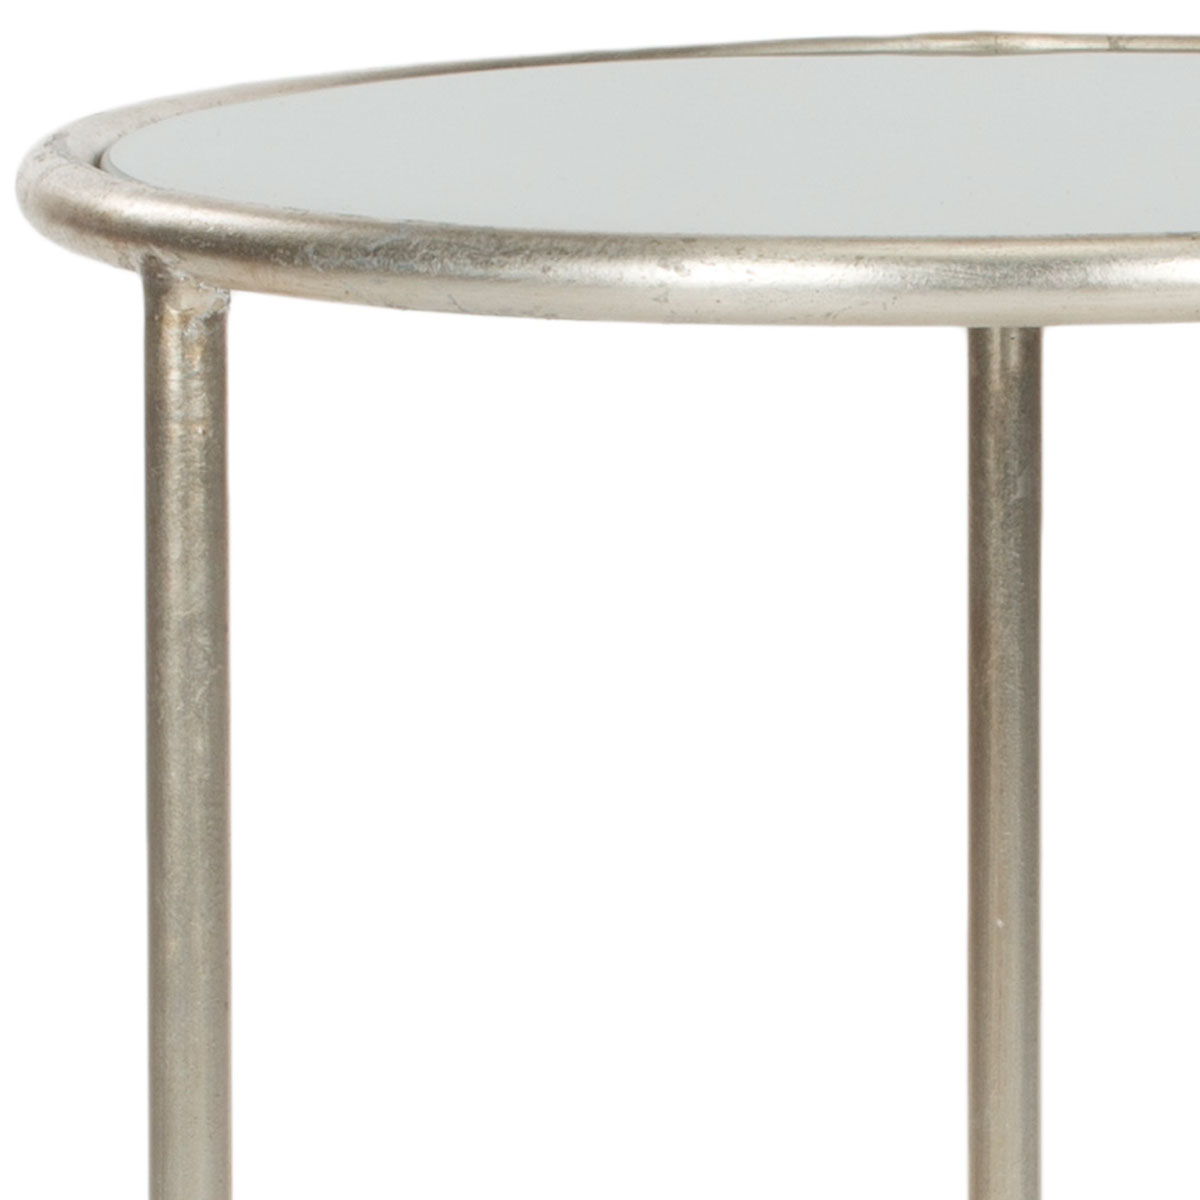 accent tables furniture safavieh detail mirrored glass table with drawer shay top silver design high wine rack patio nic country cottage coffee unusual side ashley bedding square